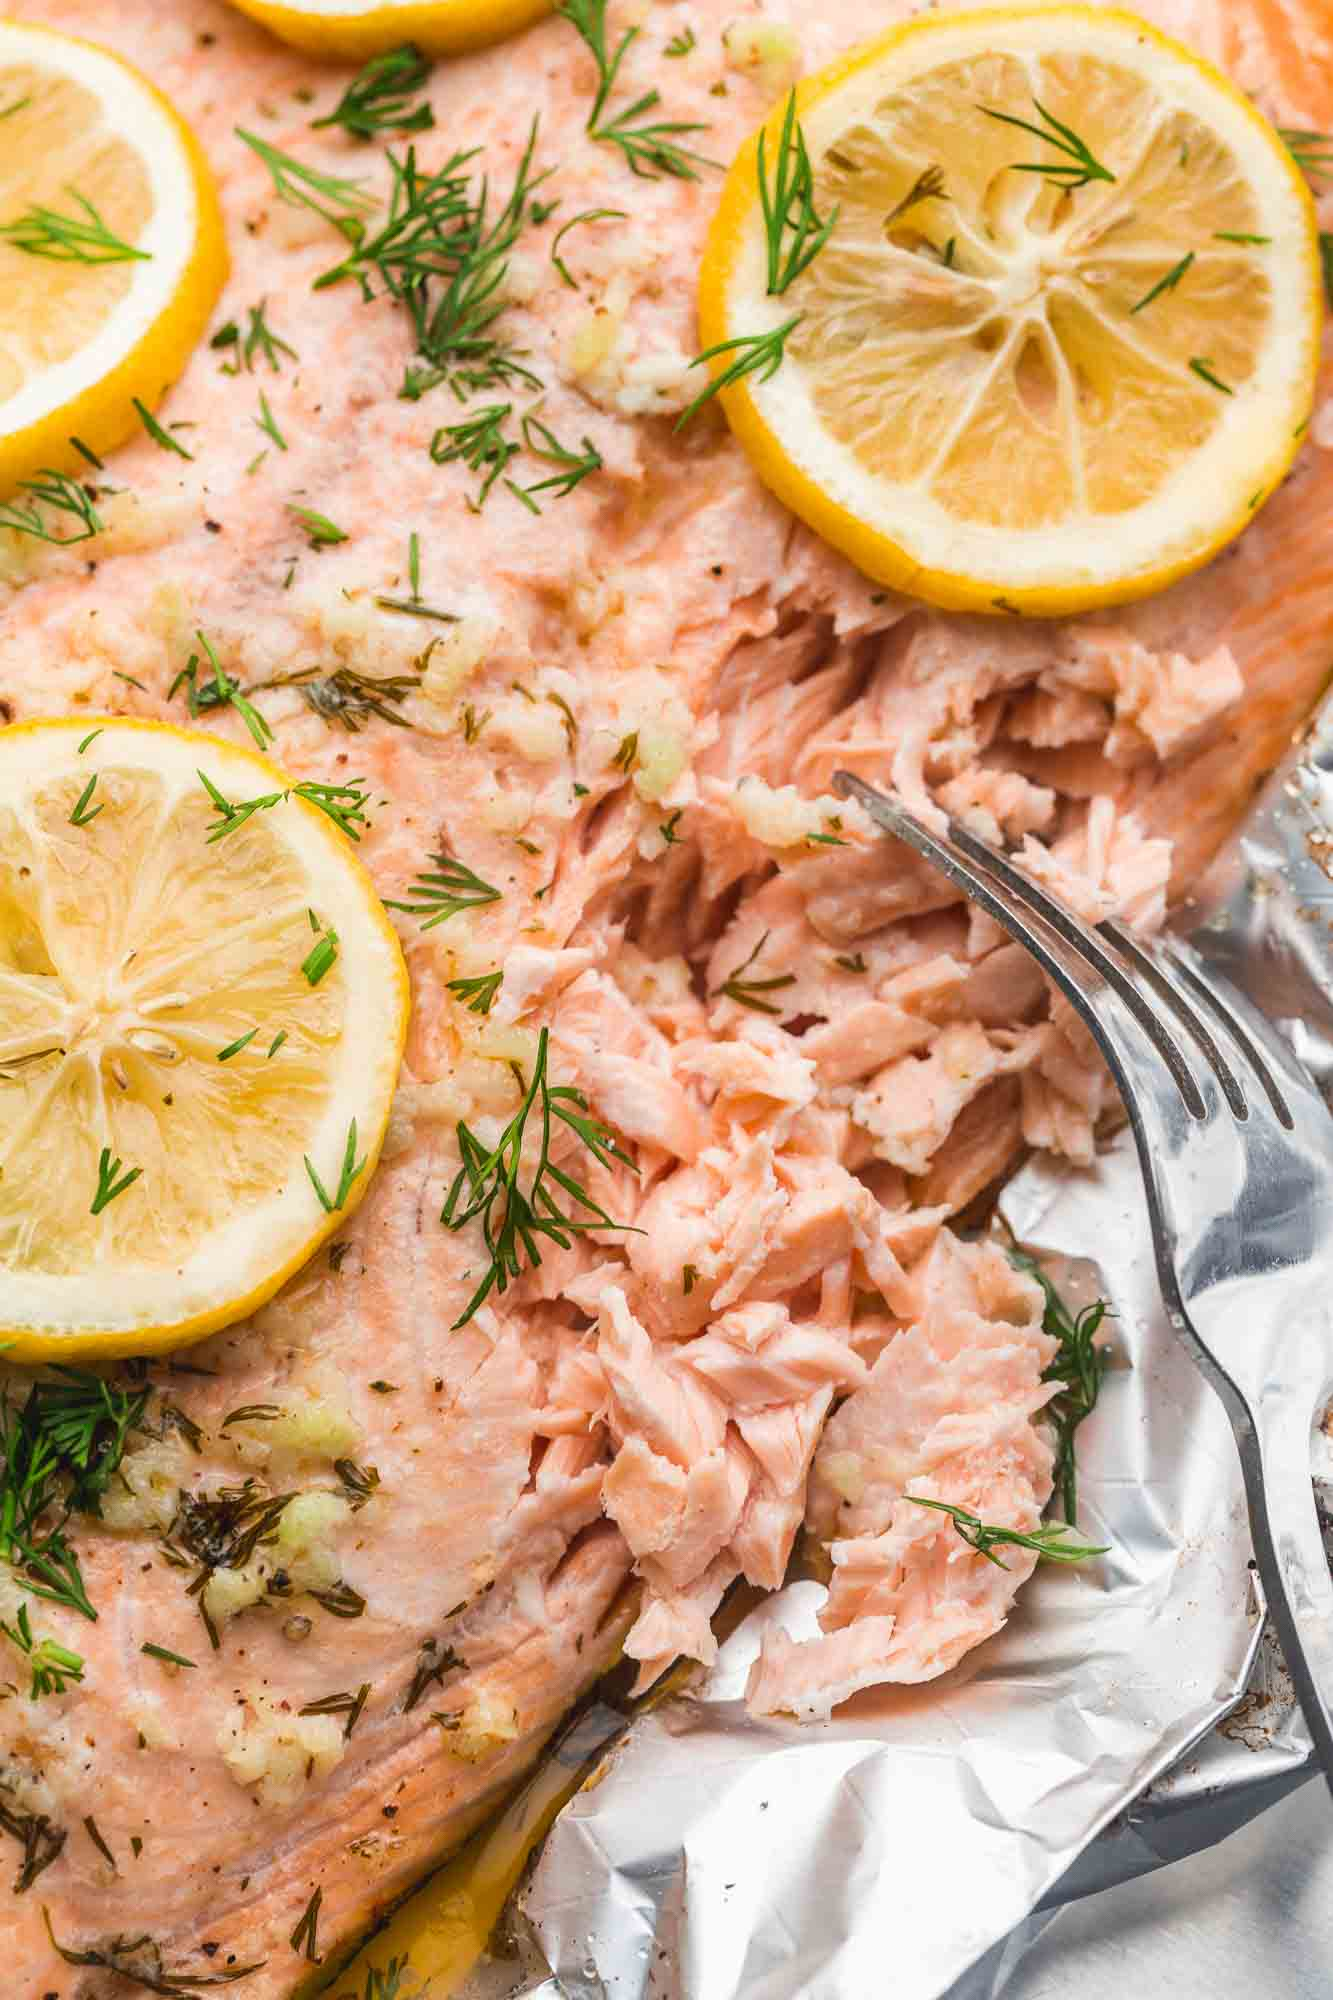 Whole side of salmon baked in foil flaked with a fork. With lemon slices and fresh dill.